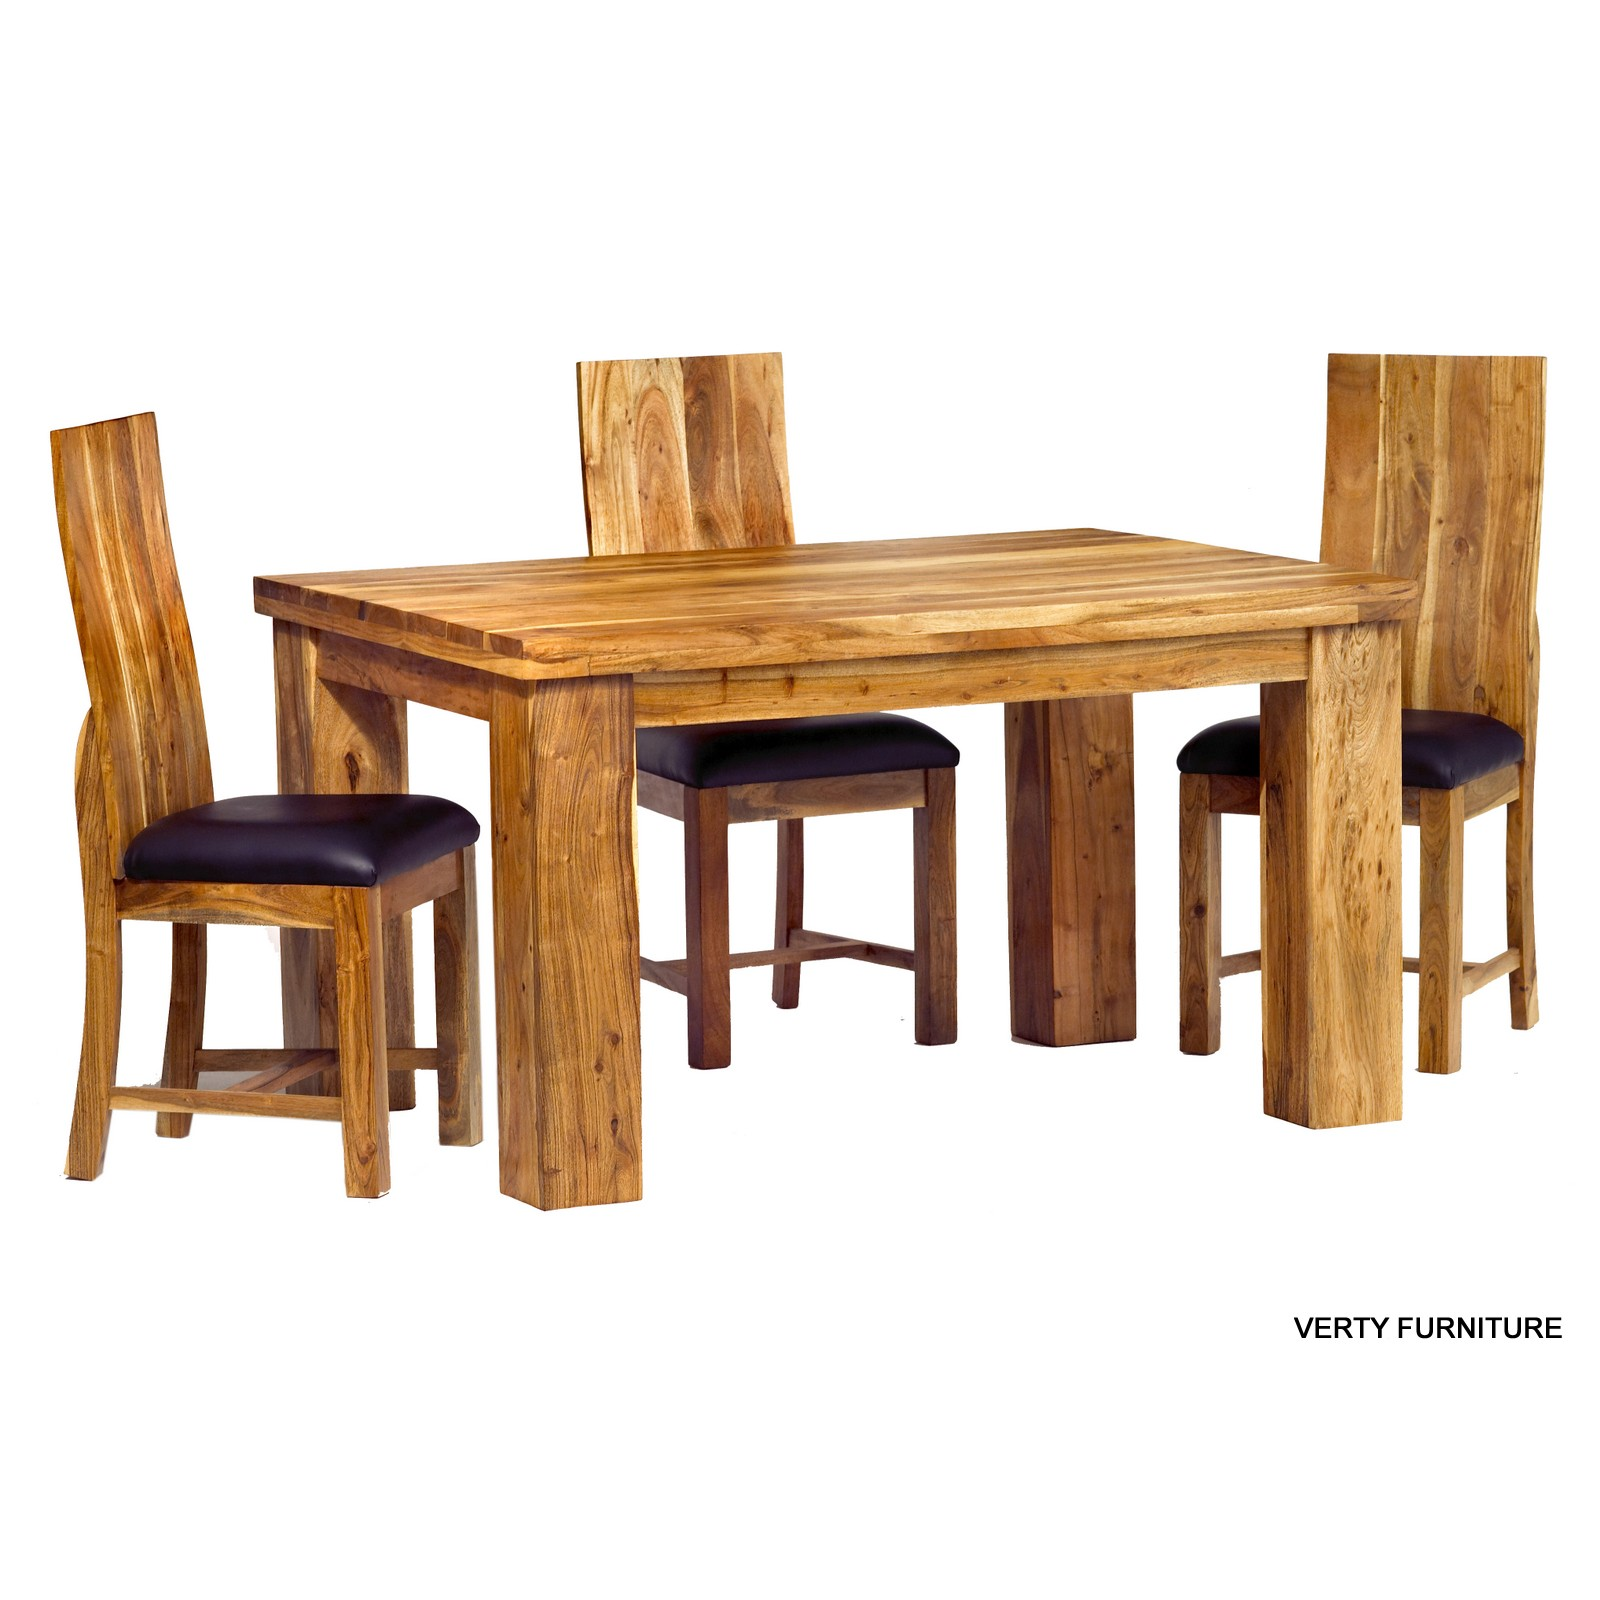 Acacia dining table small with 4 chairs verty indian for Small dining table and chairs